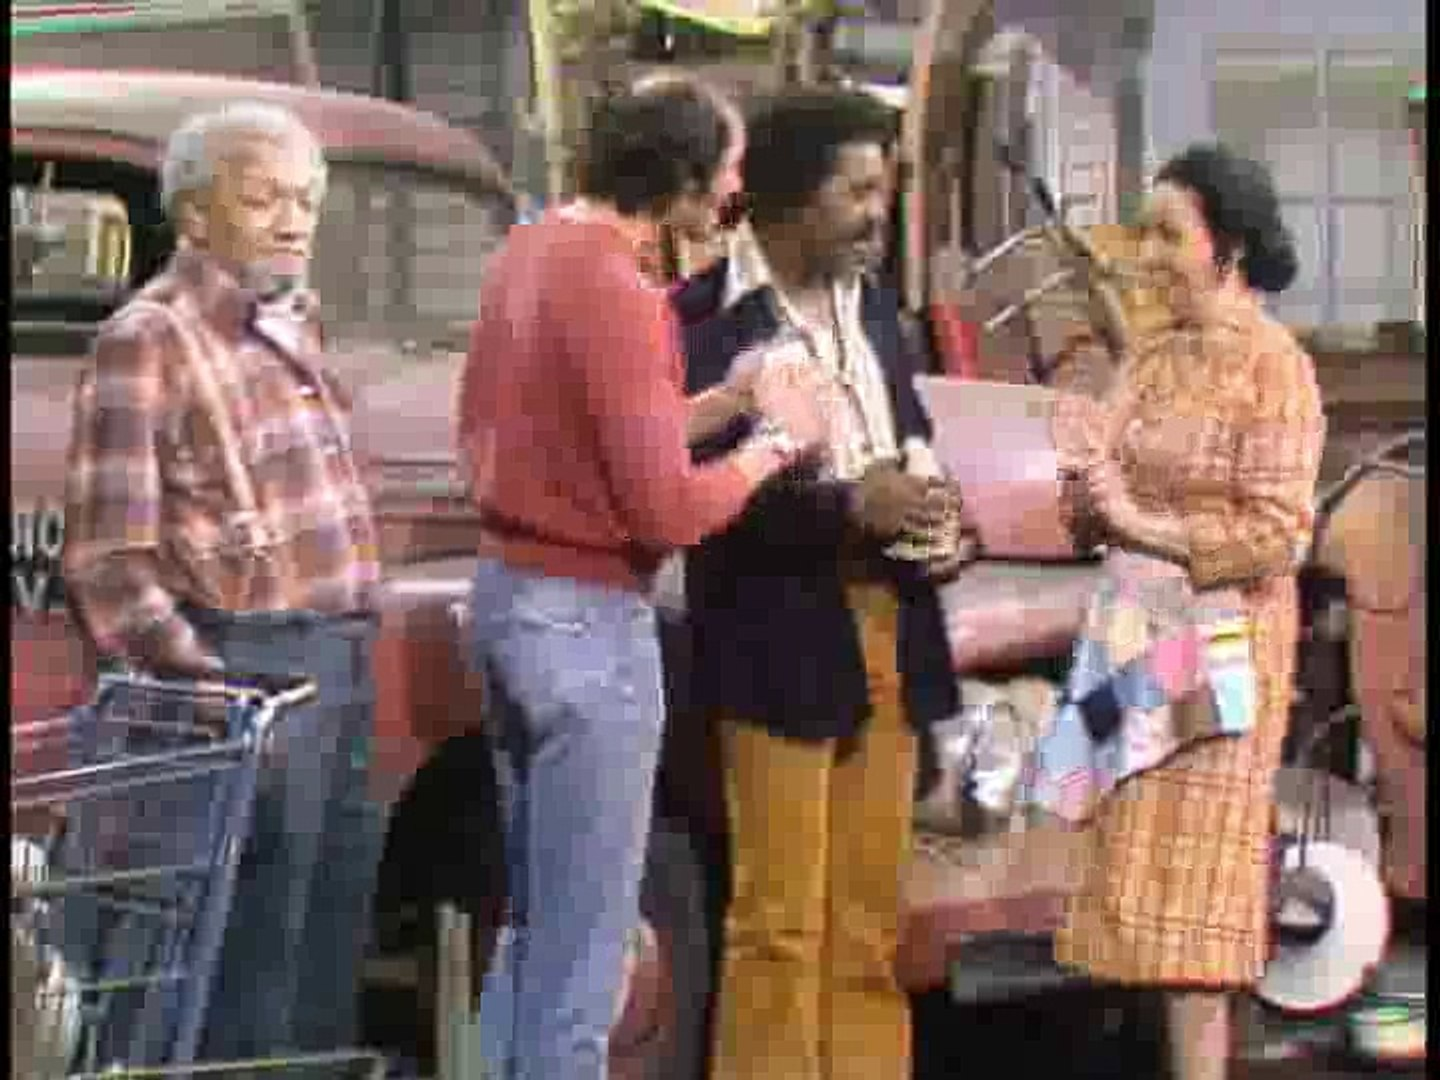 Sanford And Son S03E07 Fuentes, Fuentes, Sanford And Chico